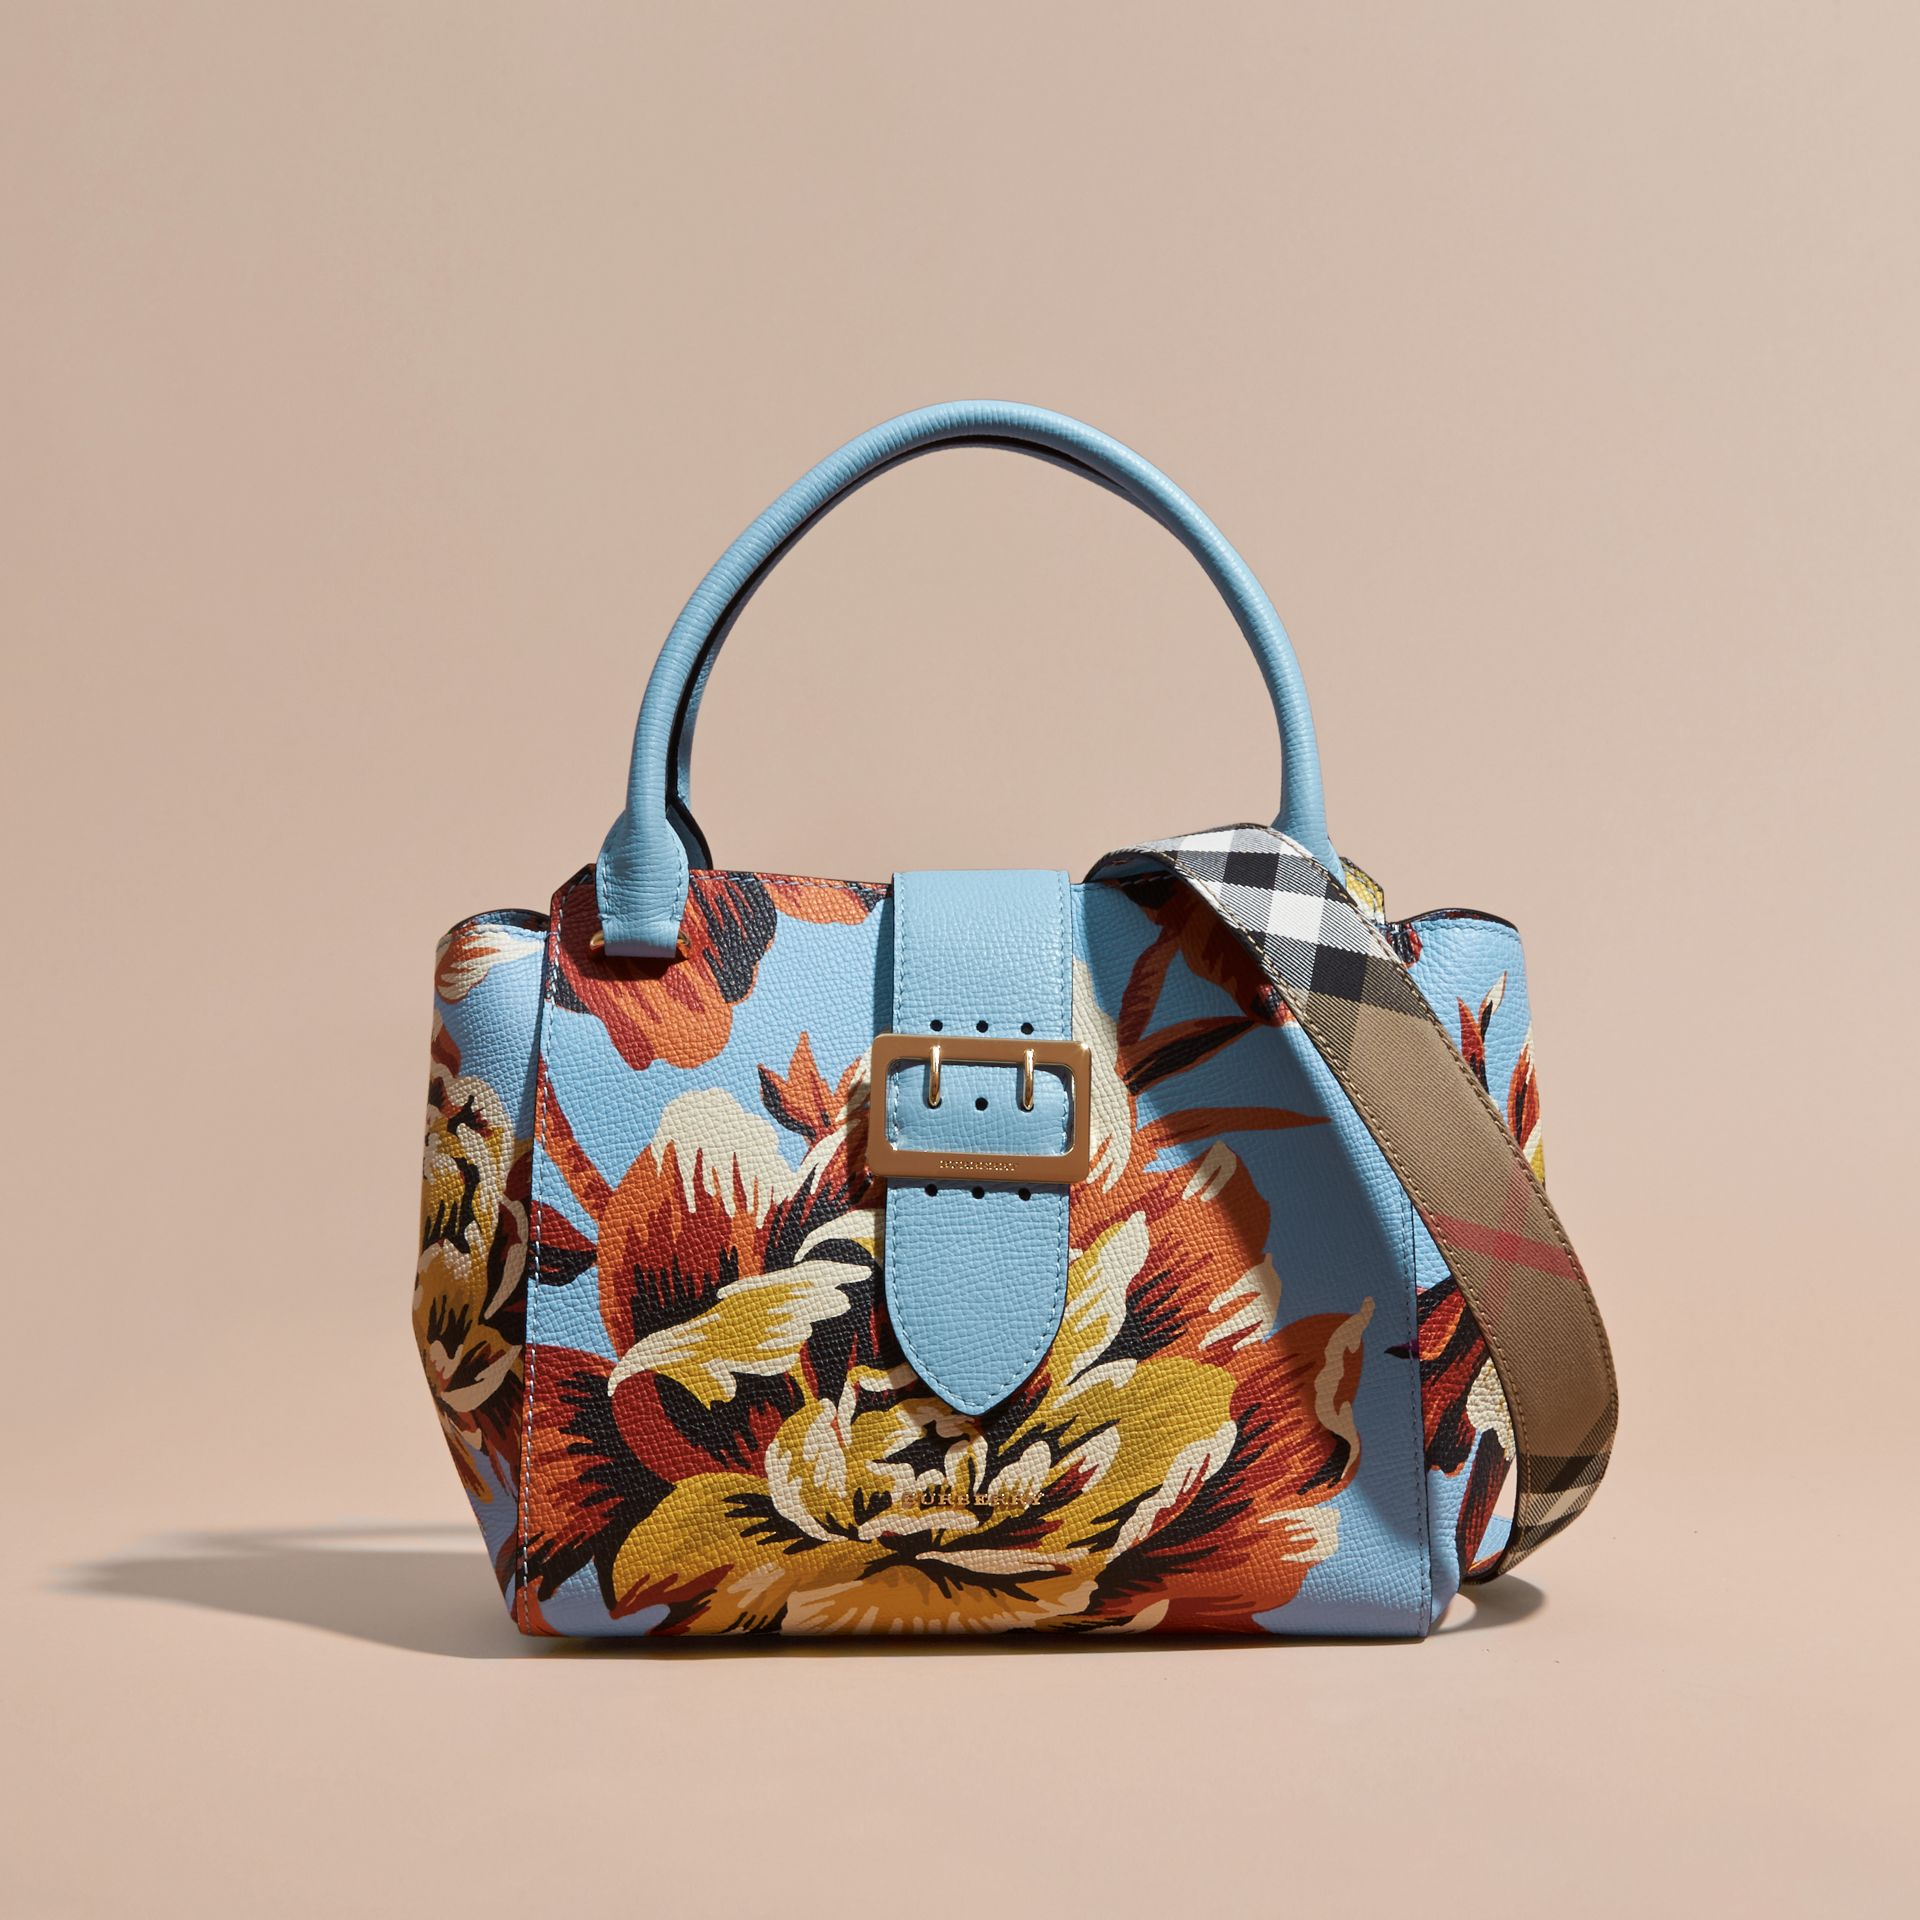 Pale blue/vibrant orange The Medium Buckle Tote in Peony Rose Print Leather Pale Blue/vibrant Orange - gallery image 9